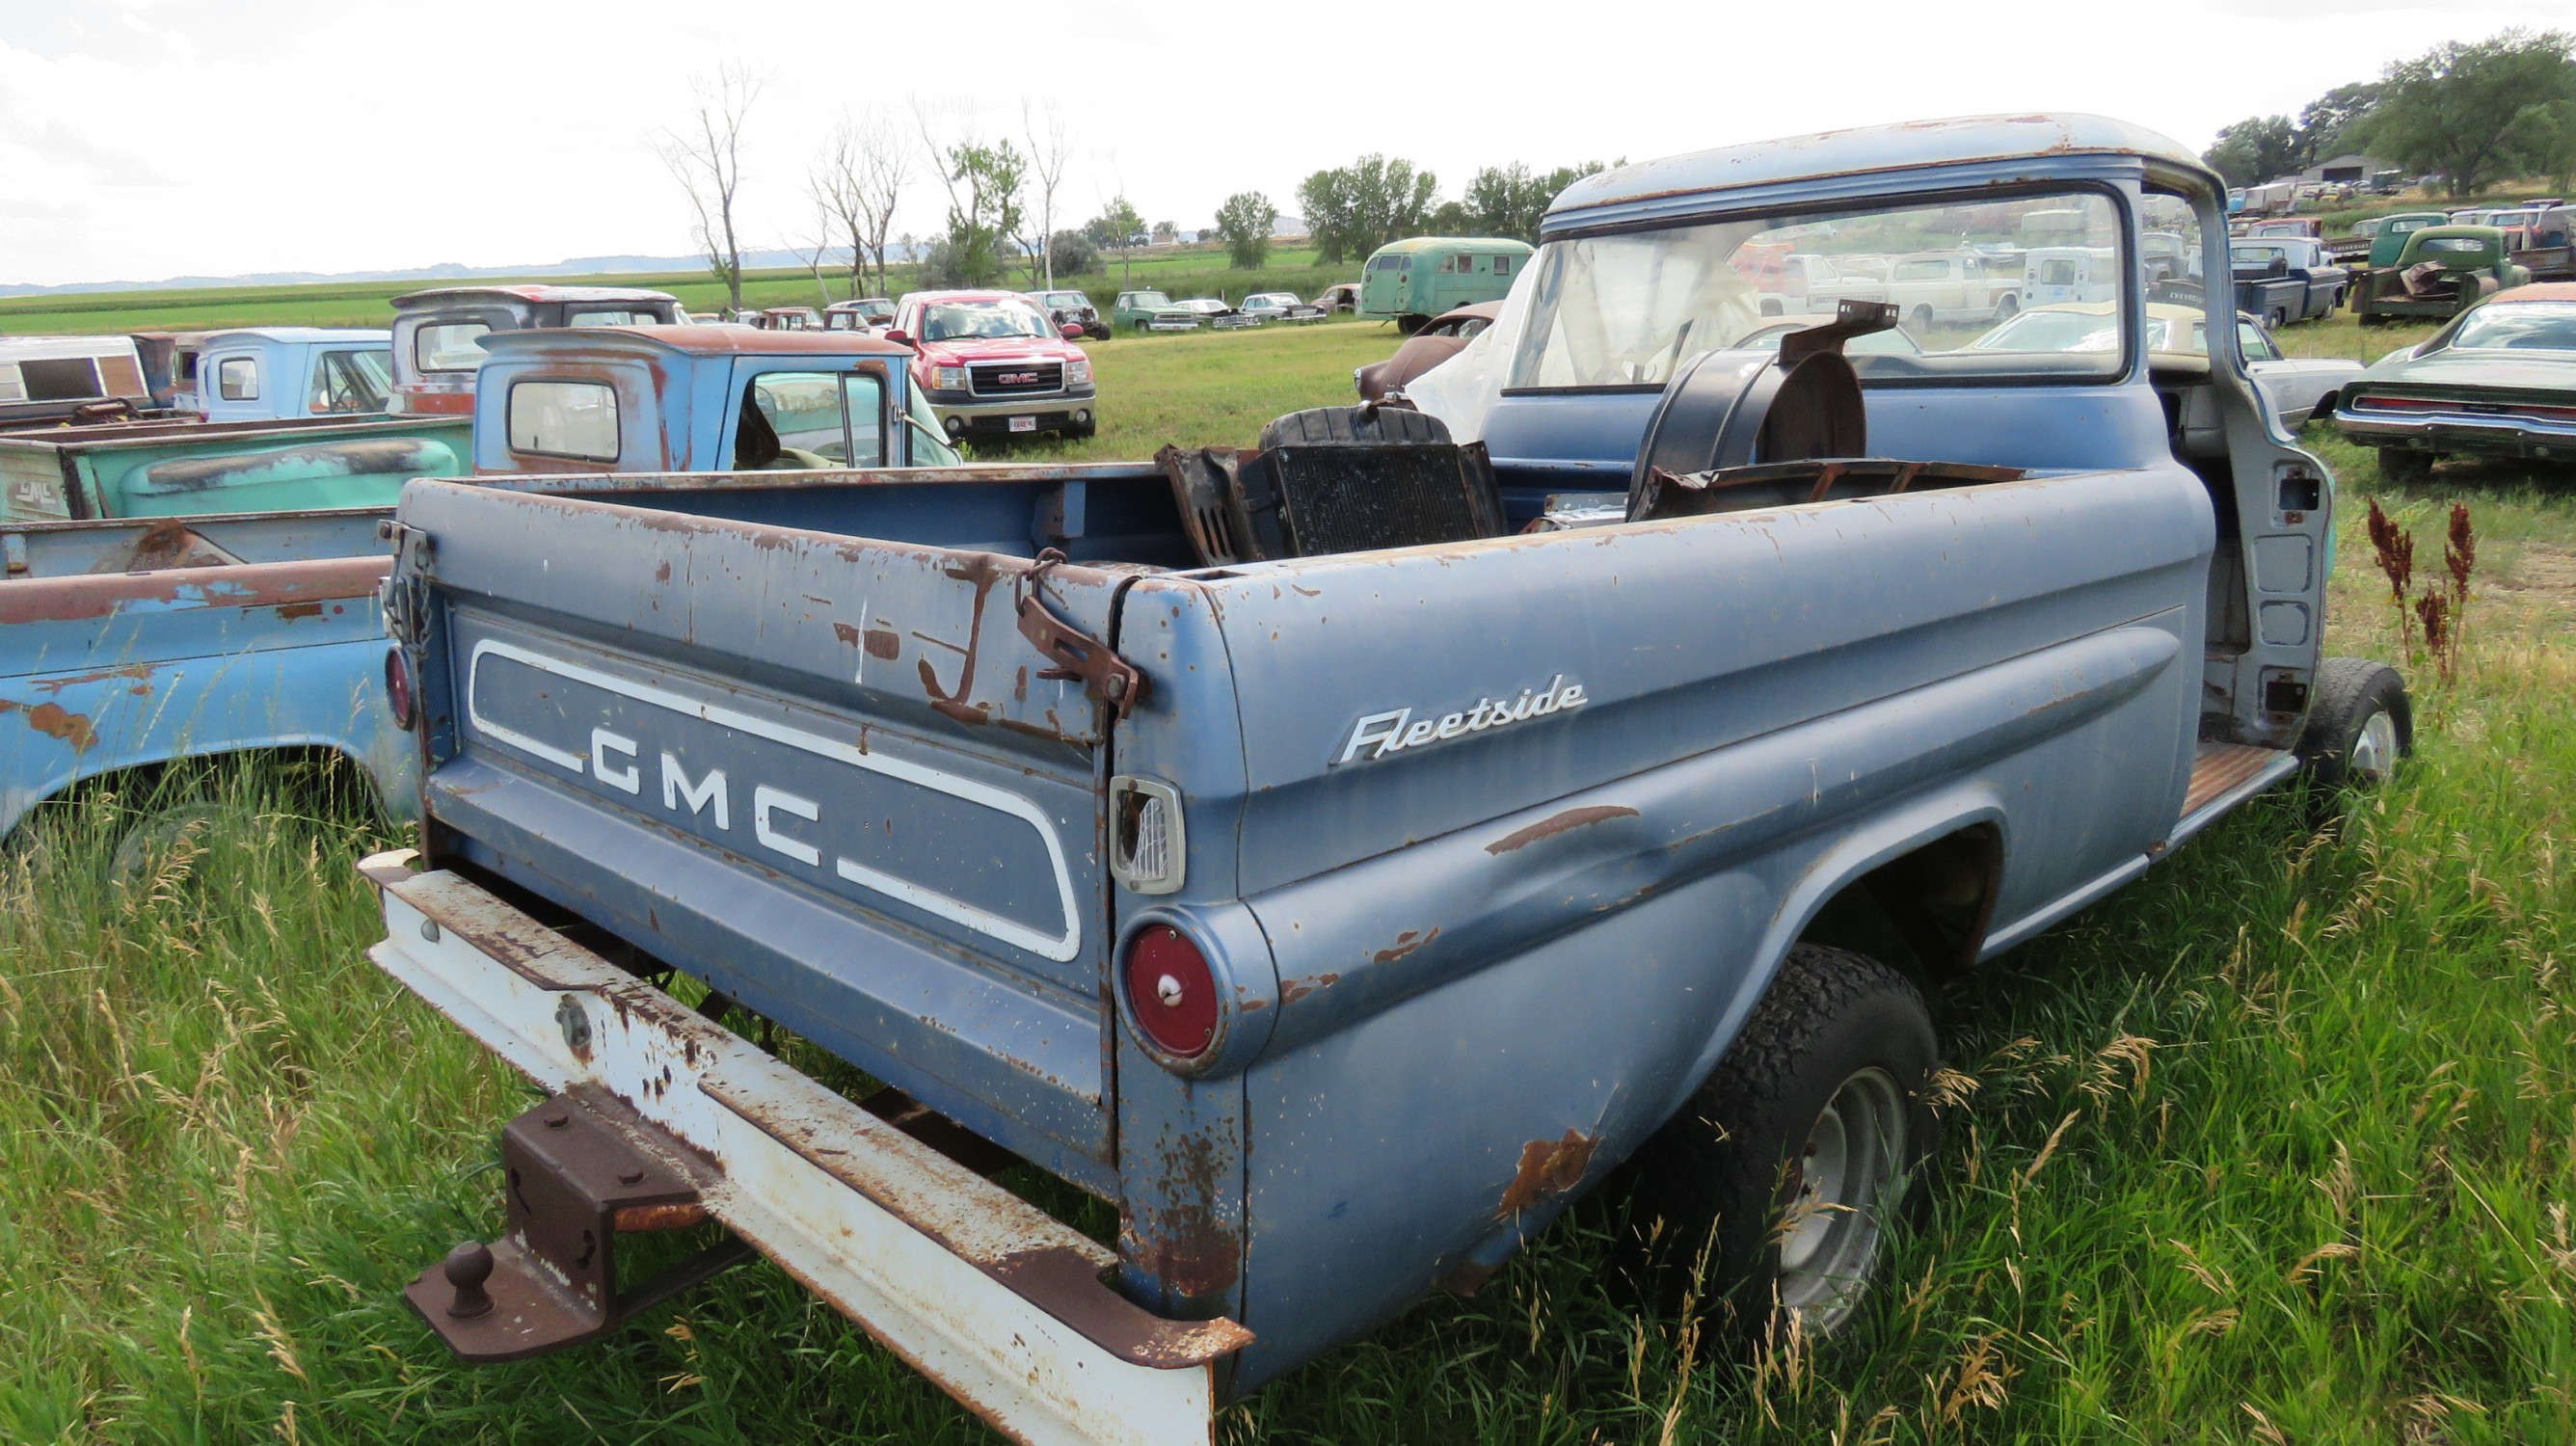 1955 GMC FLEETSIDE PICKUP - Image 3